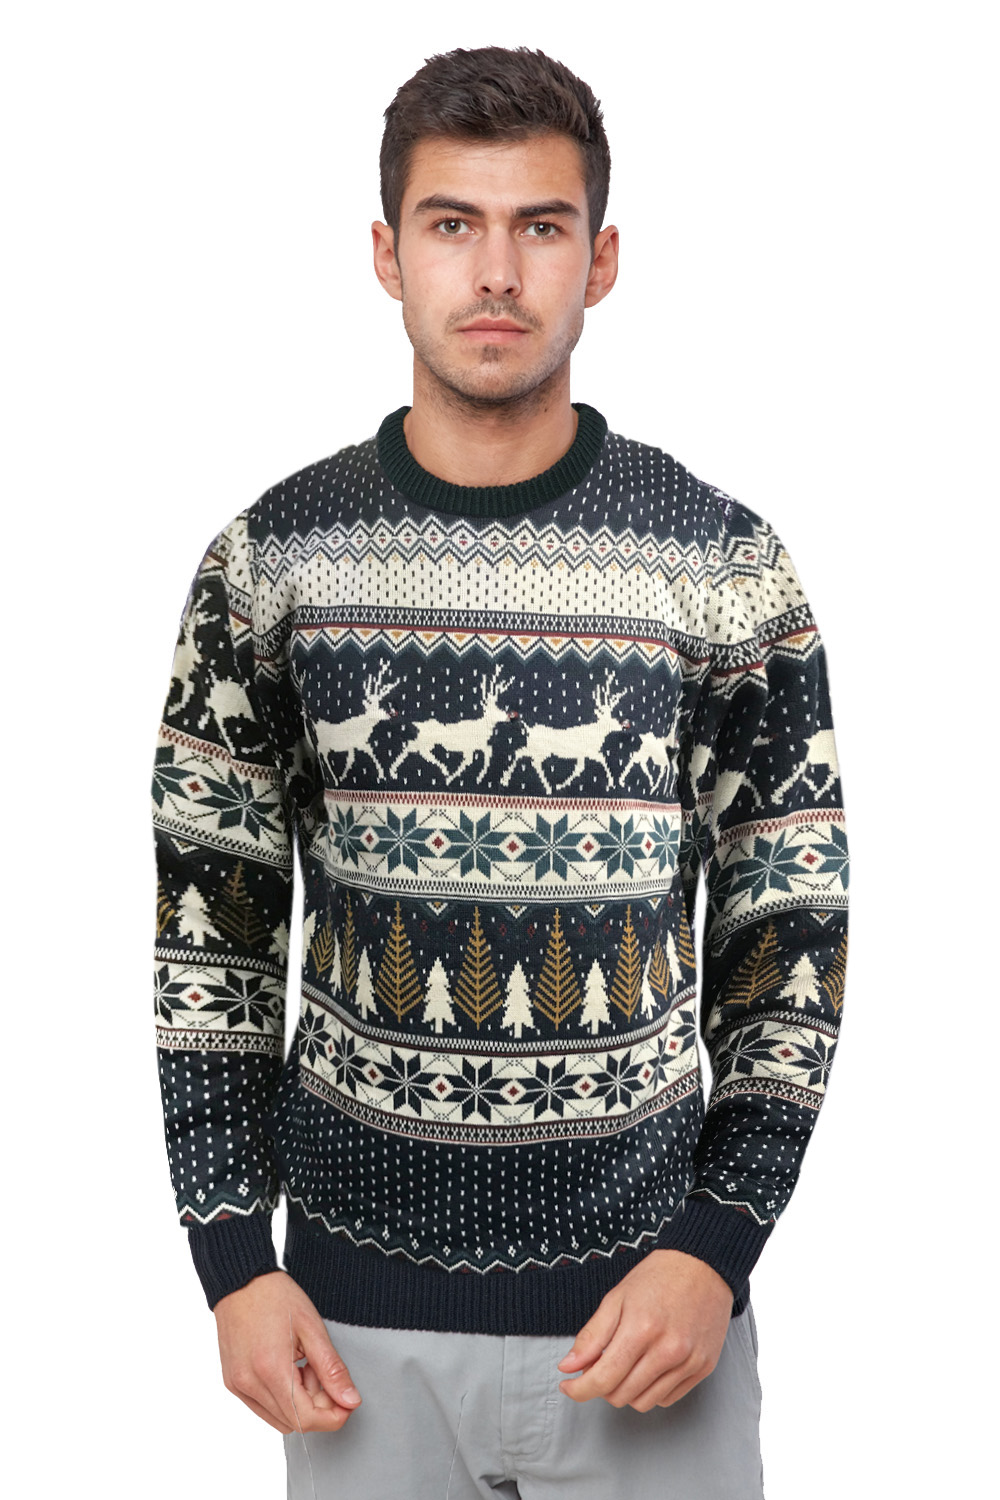 Seasons-Greetings-Mens-Reindeer-Fairisle-With-Lights-Festive-Christmas-Jumper thumbnail 5